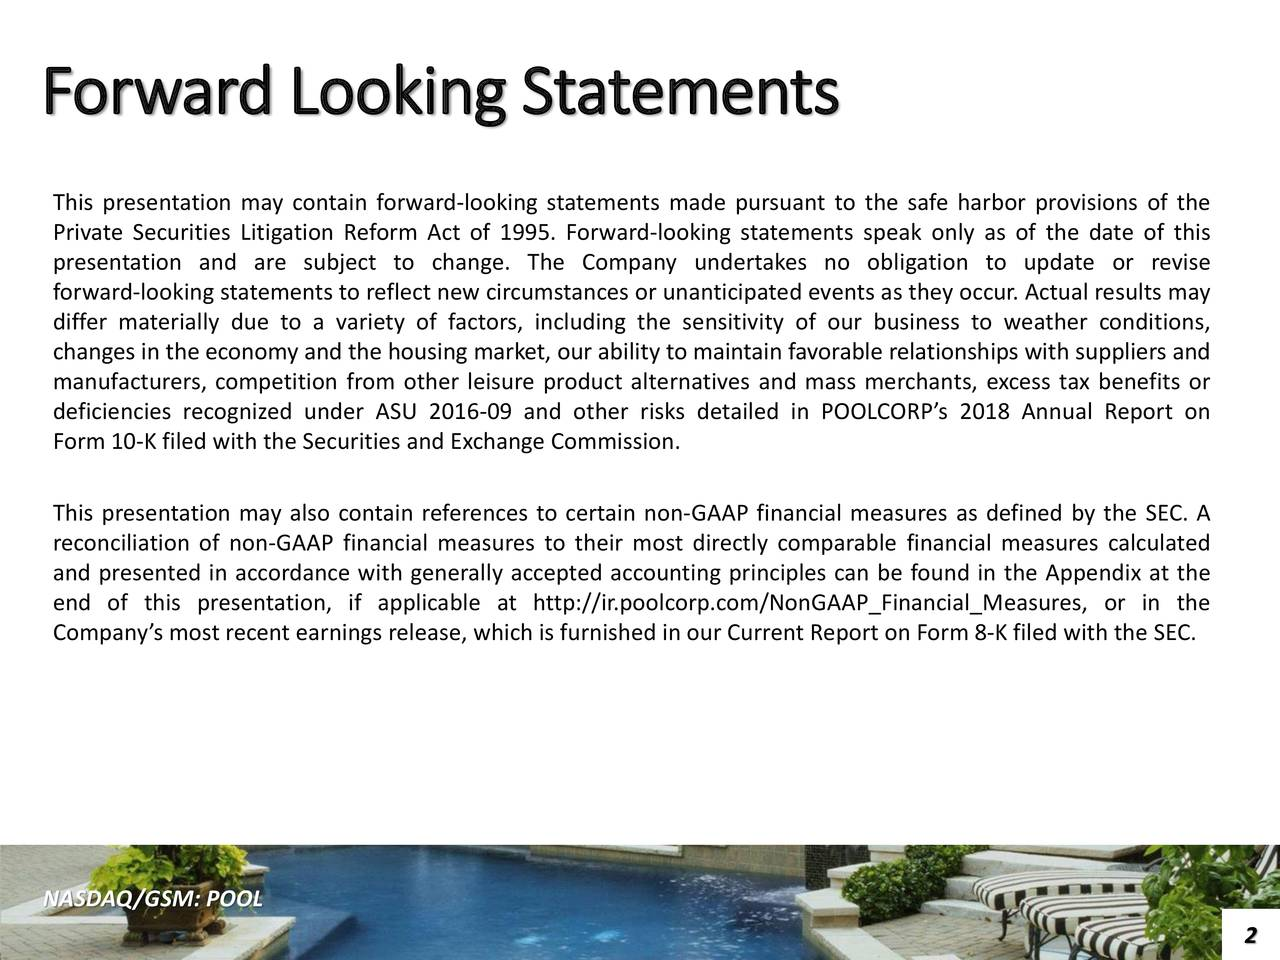 This presentation may contain forward-looking statements made pursuant to the safe harbor provisions of the Private Securities Litigation Reform Act of 1995. Forward-looking statements speak only as of the date of this presentation and are subject to change. The Company undertakes no obligation to update or revise forward-looking statements to reflect new circumstances or unanticipated events as they occur. Actual results may differ materially due to a variety of factors, including the sensitivity of our business to weather conditions, changes in the economy and the housing market, our ability to maintain favorable relationships with suppliers and manufacturers, competition from other leisure product alternatives and mass merchants, excess tax benefits or deficiencies recognized under ASU 2016-09 and other risks detailed in POOLCORP's 2018 Annual Report on Form 10-K filed with the Securities and Exchange Commission. This presentation may also contain references to certain non-GAAP financial measures as defined by the SEC. A reconciliation of non-GAAP financial measures to their most directly comparable financial measures calculated and presented in accordance with generally accepted accounting principles can be found in the Appendix at the end of this presentation, if applicable at http://ir.poolcorp.com/NonGAAP_Financial_Measures, or in the Company's most recent earnings release, which is furnished in our Current Report on Form 8-K filed with the SEC. NASDAQ/GSM: POOL 2